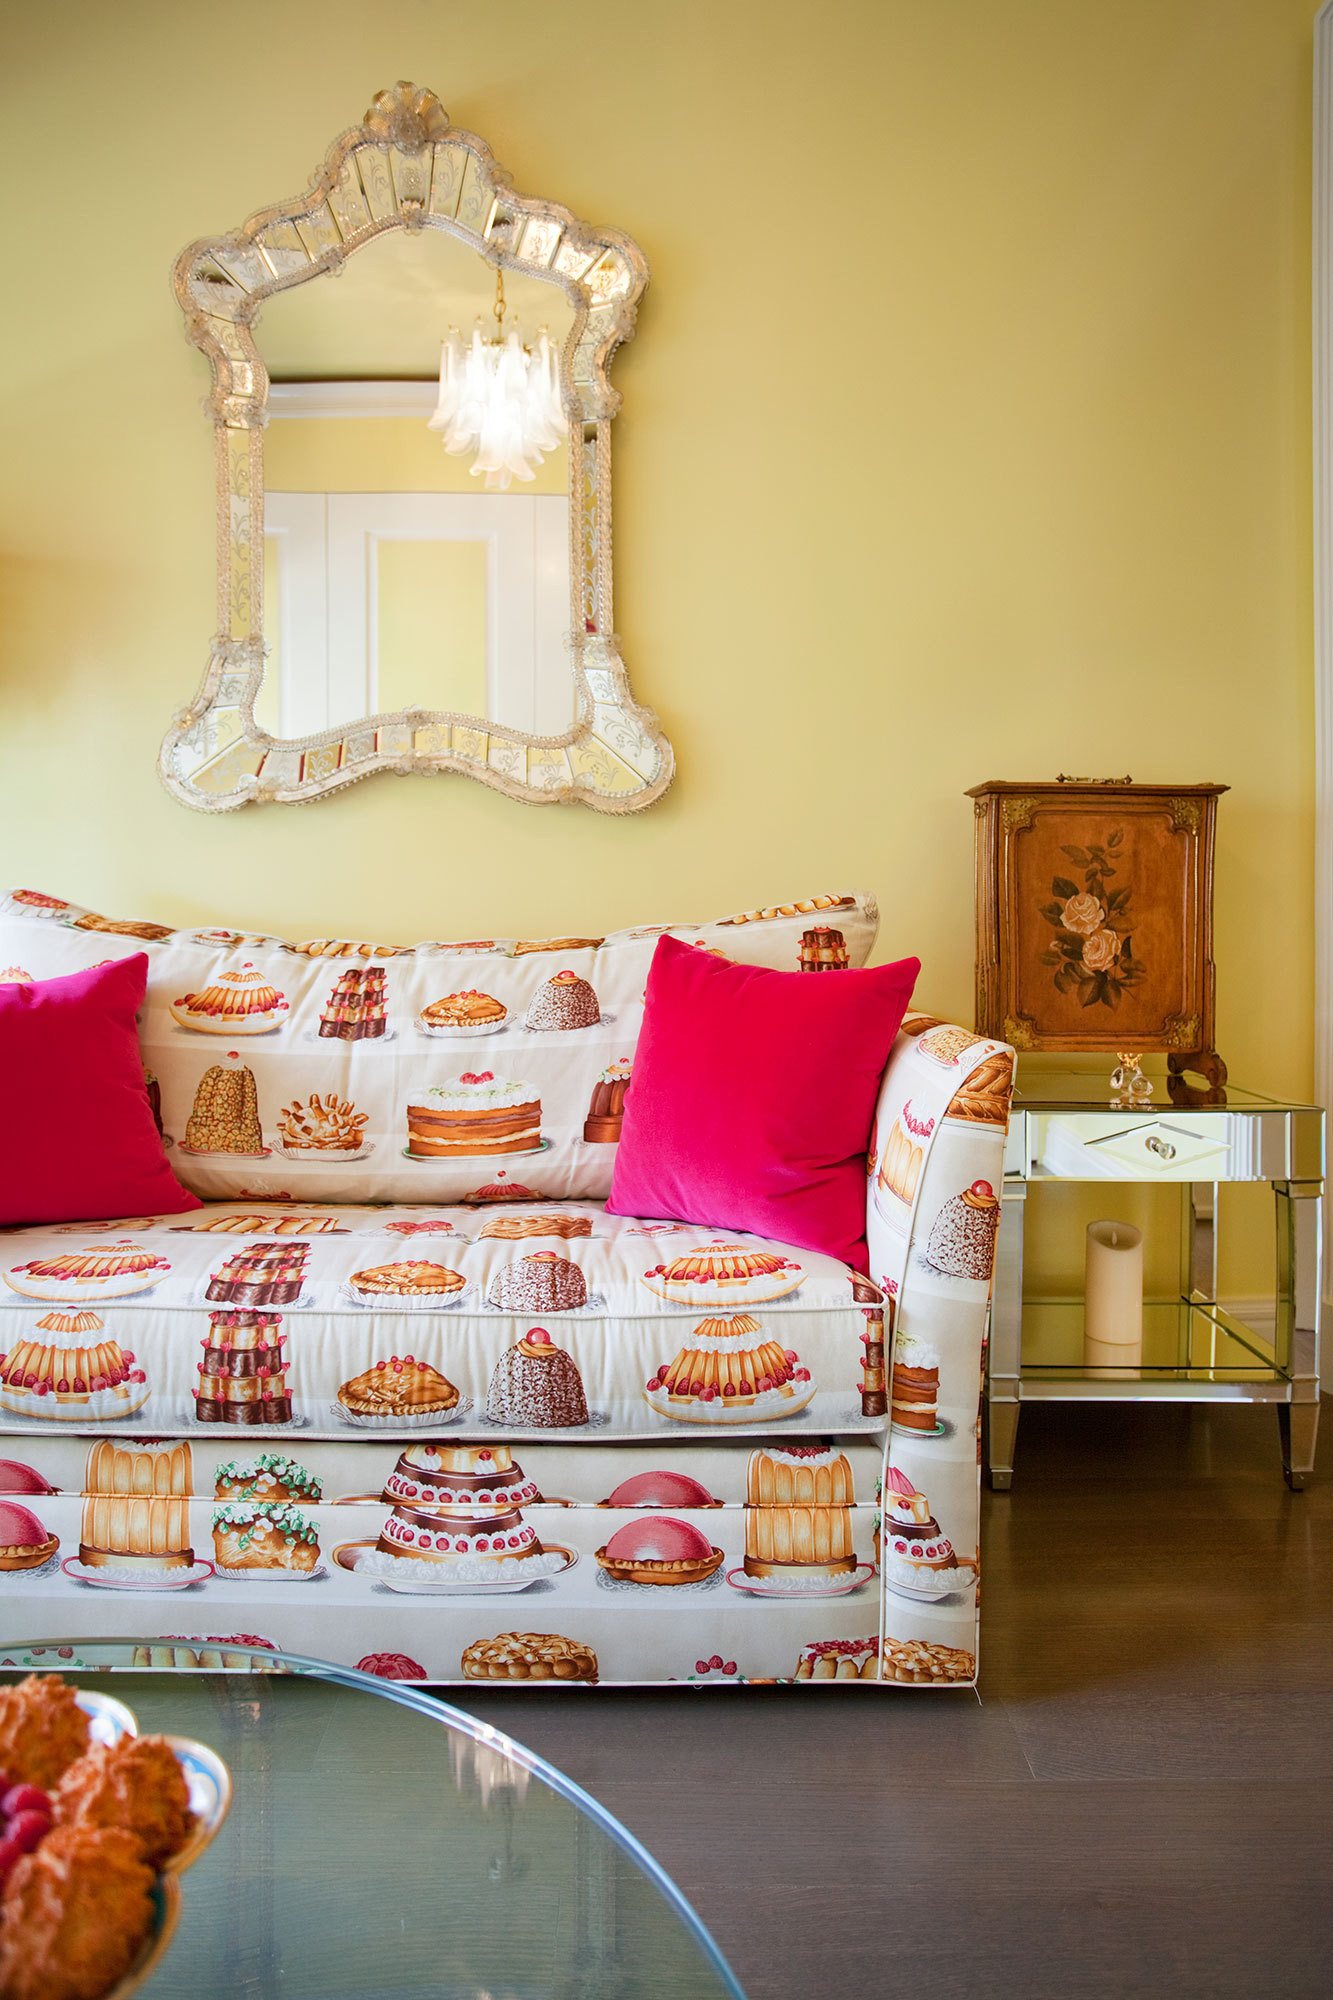 Pierre Frey fabric adds a decadent air in the yellow bedroom.